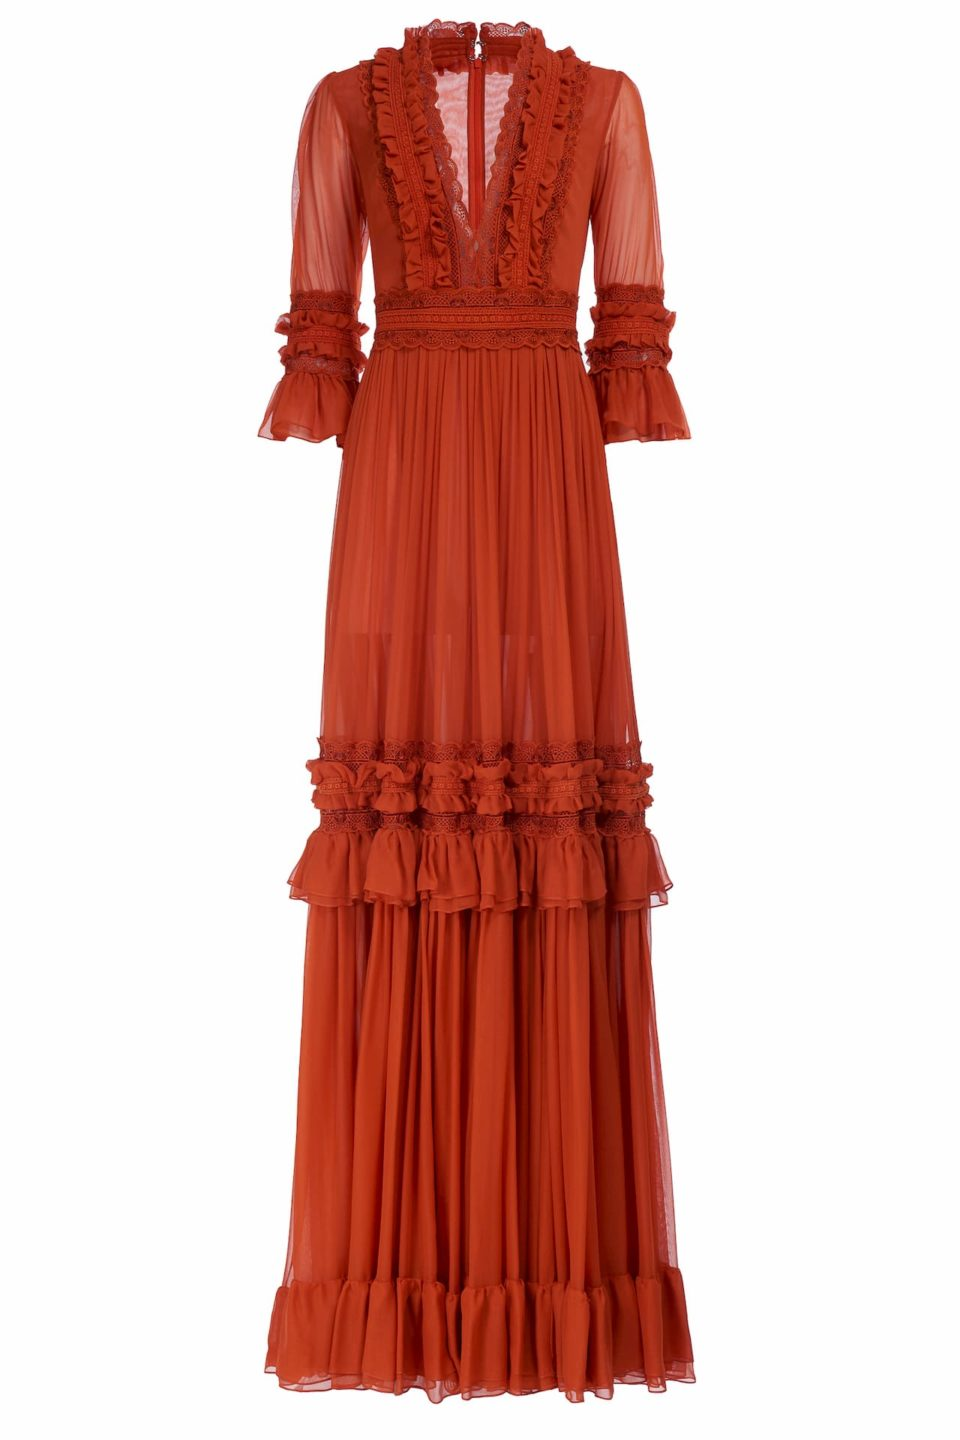 Shay FW2011 terracotta orange Silk Chiffon Plunging NecklineGown with Ruffle Detail & Lace Trim